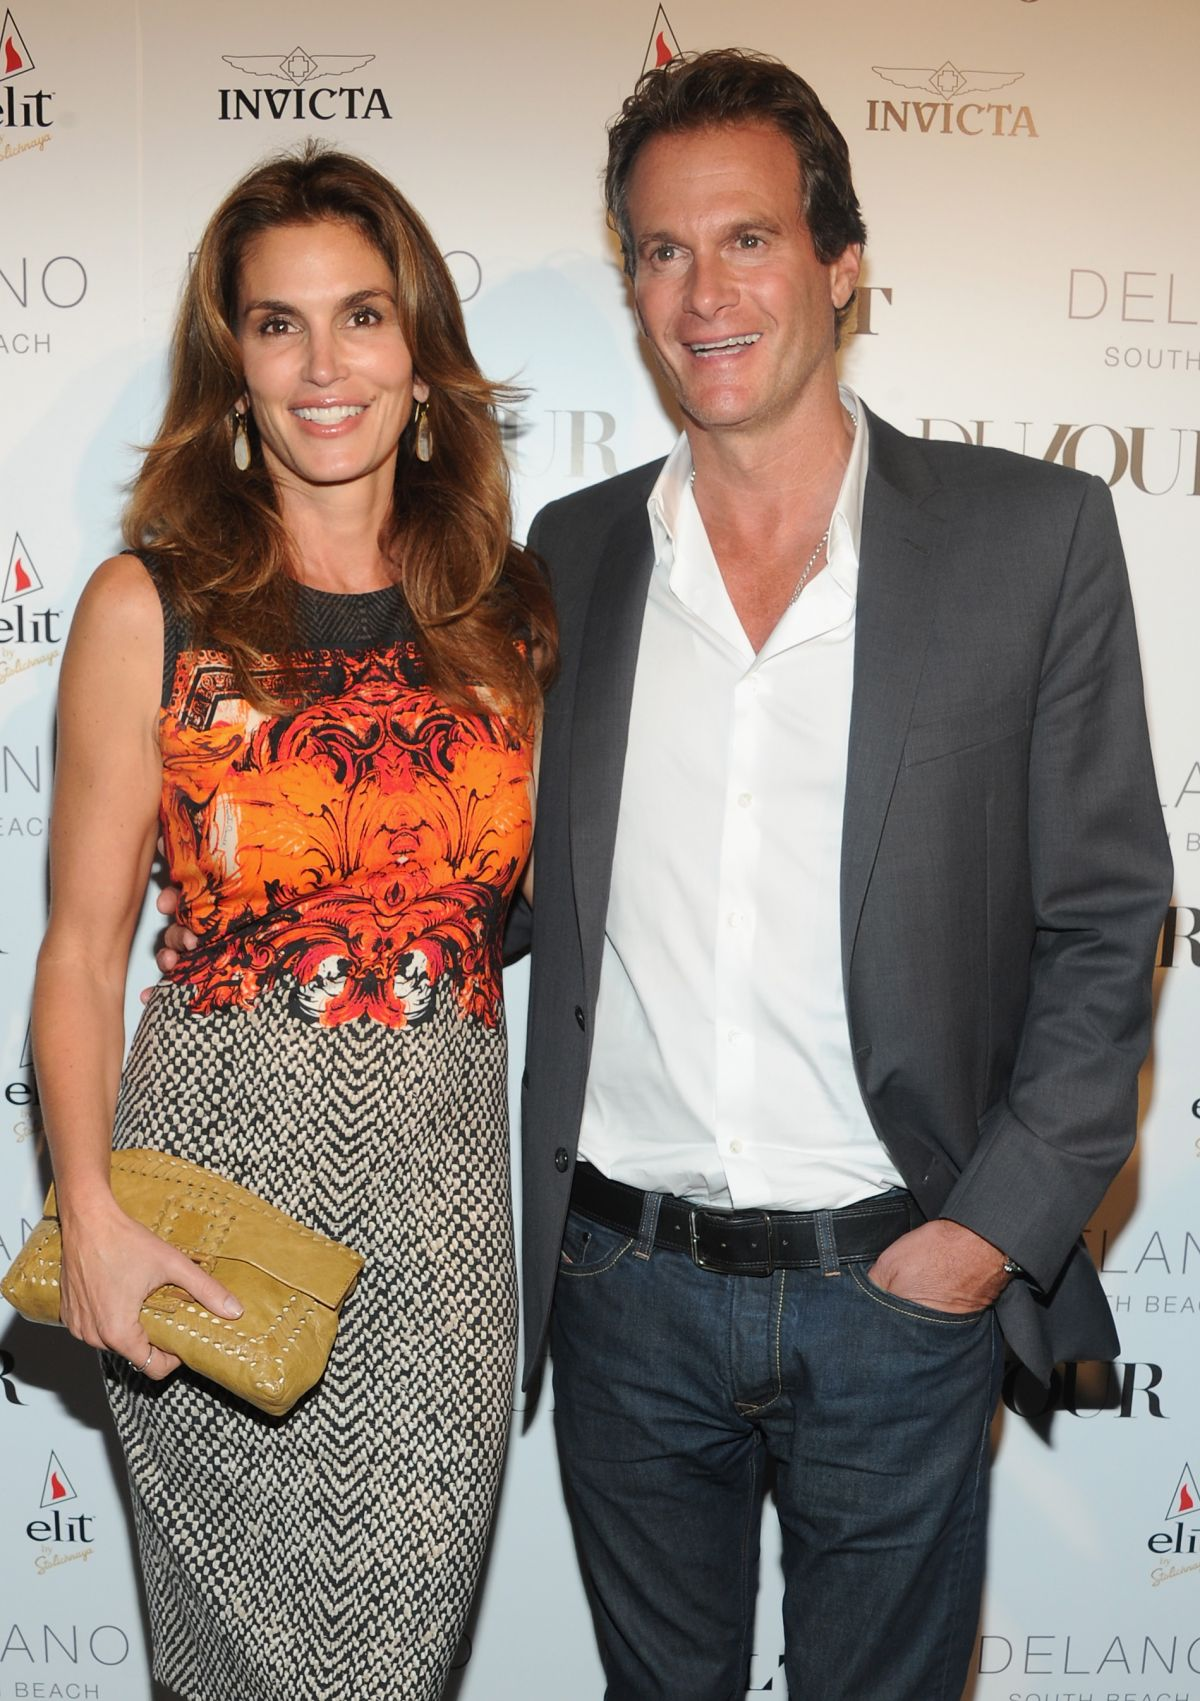 Cindy Crawford At DuJour Magazine Event In Miami Beach